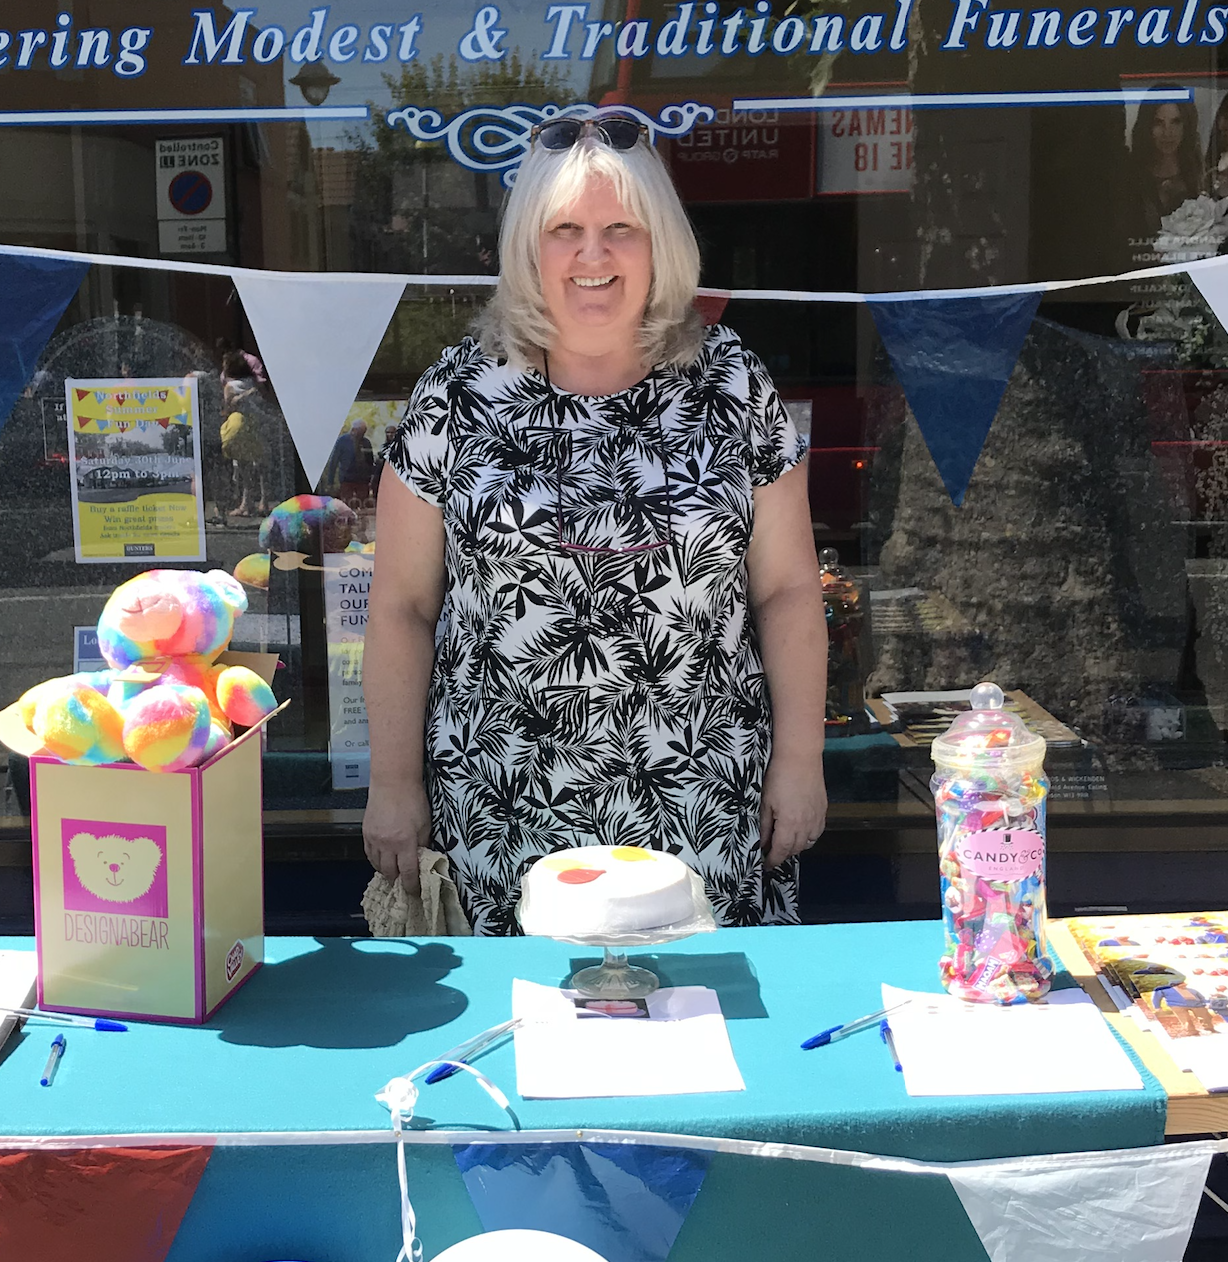 Northfield Avenue Fun Day